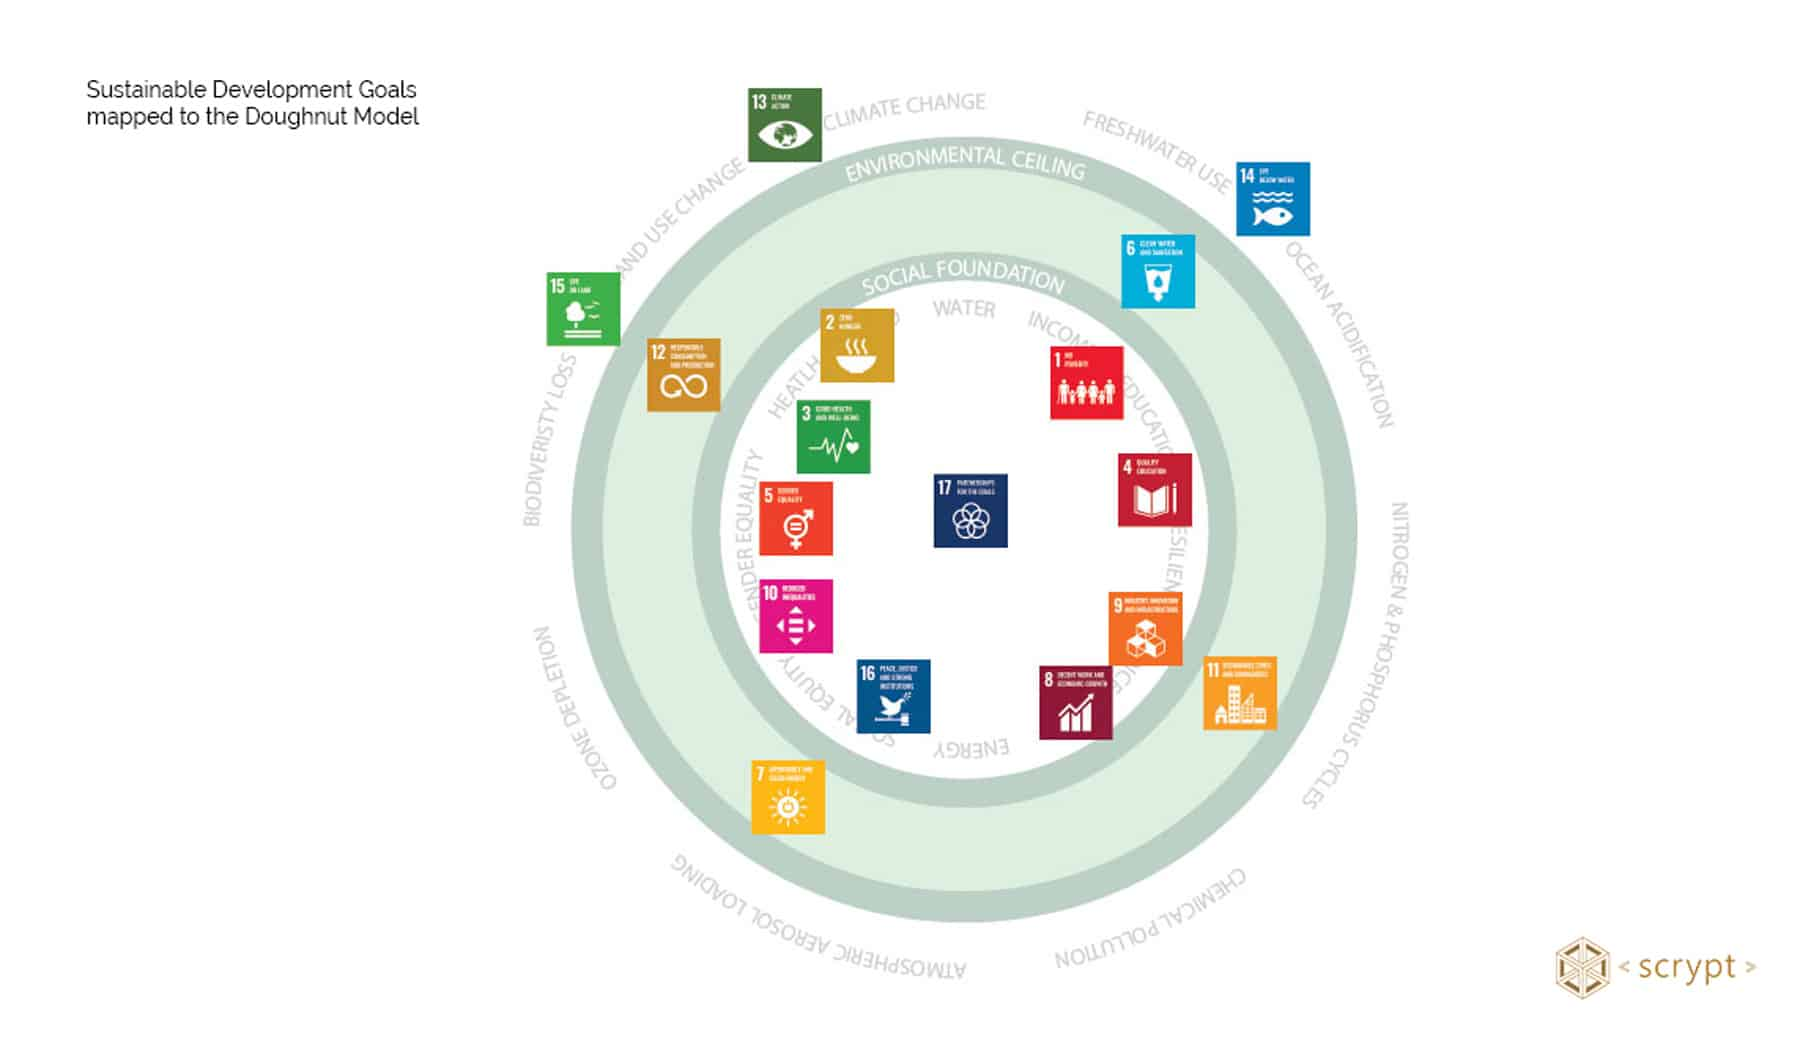 Sustainable Development Goals (SDGs) mapped to the Doughnut Model by Kate Raworth